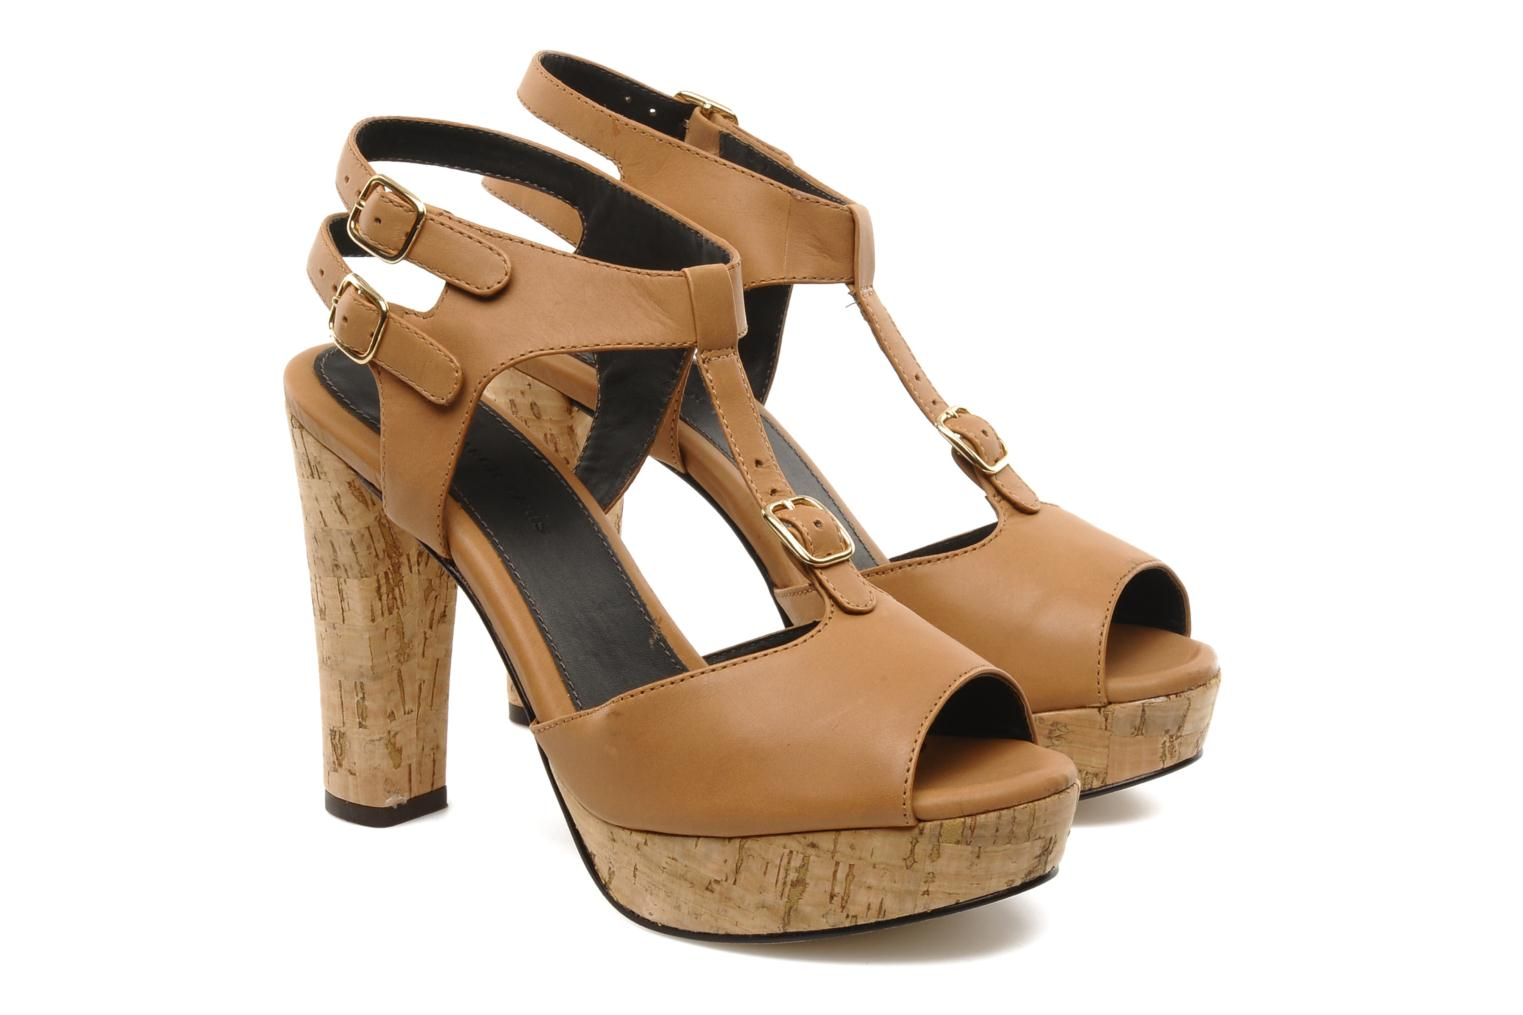 Sandali e scarpe aperte Tila March Plateform sandal t-bar Marrone immagine 3/4